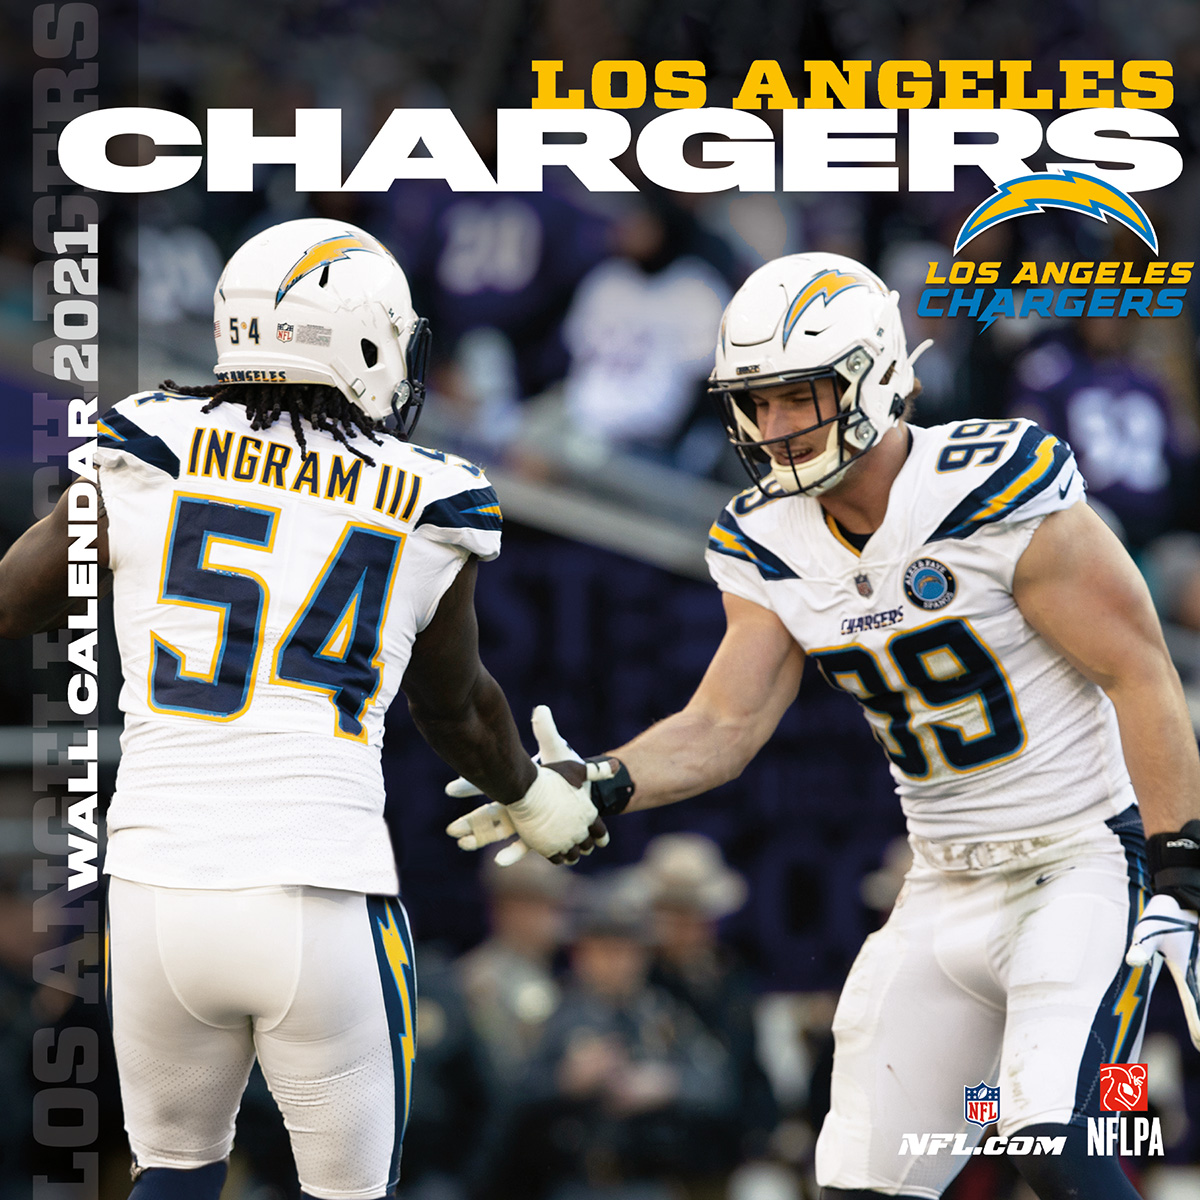 Los Angeles Chargers 2019 NFL Wall Calendar